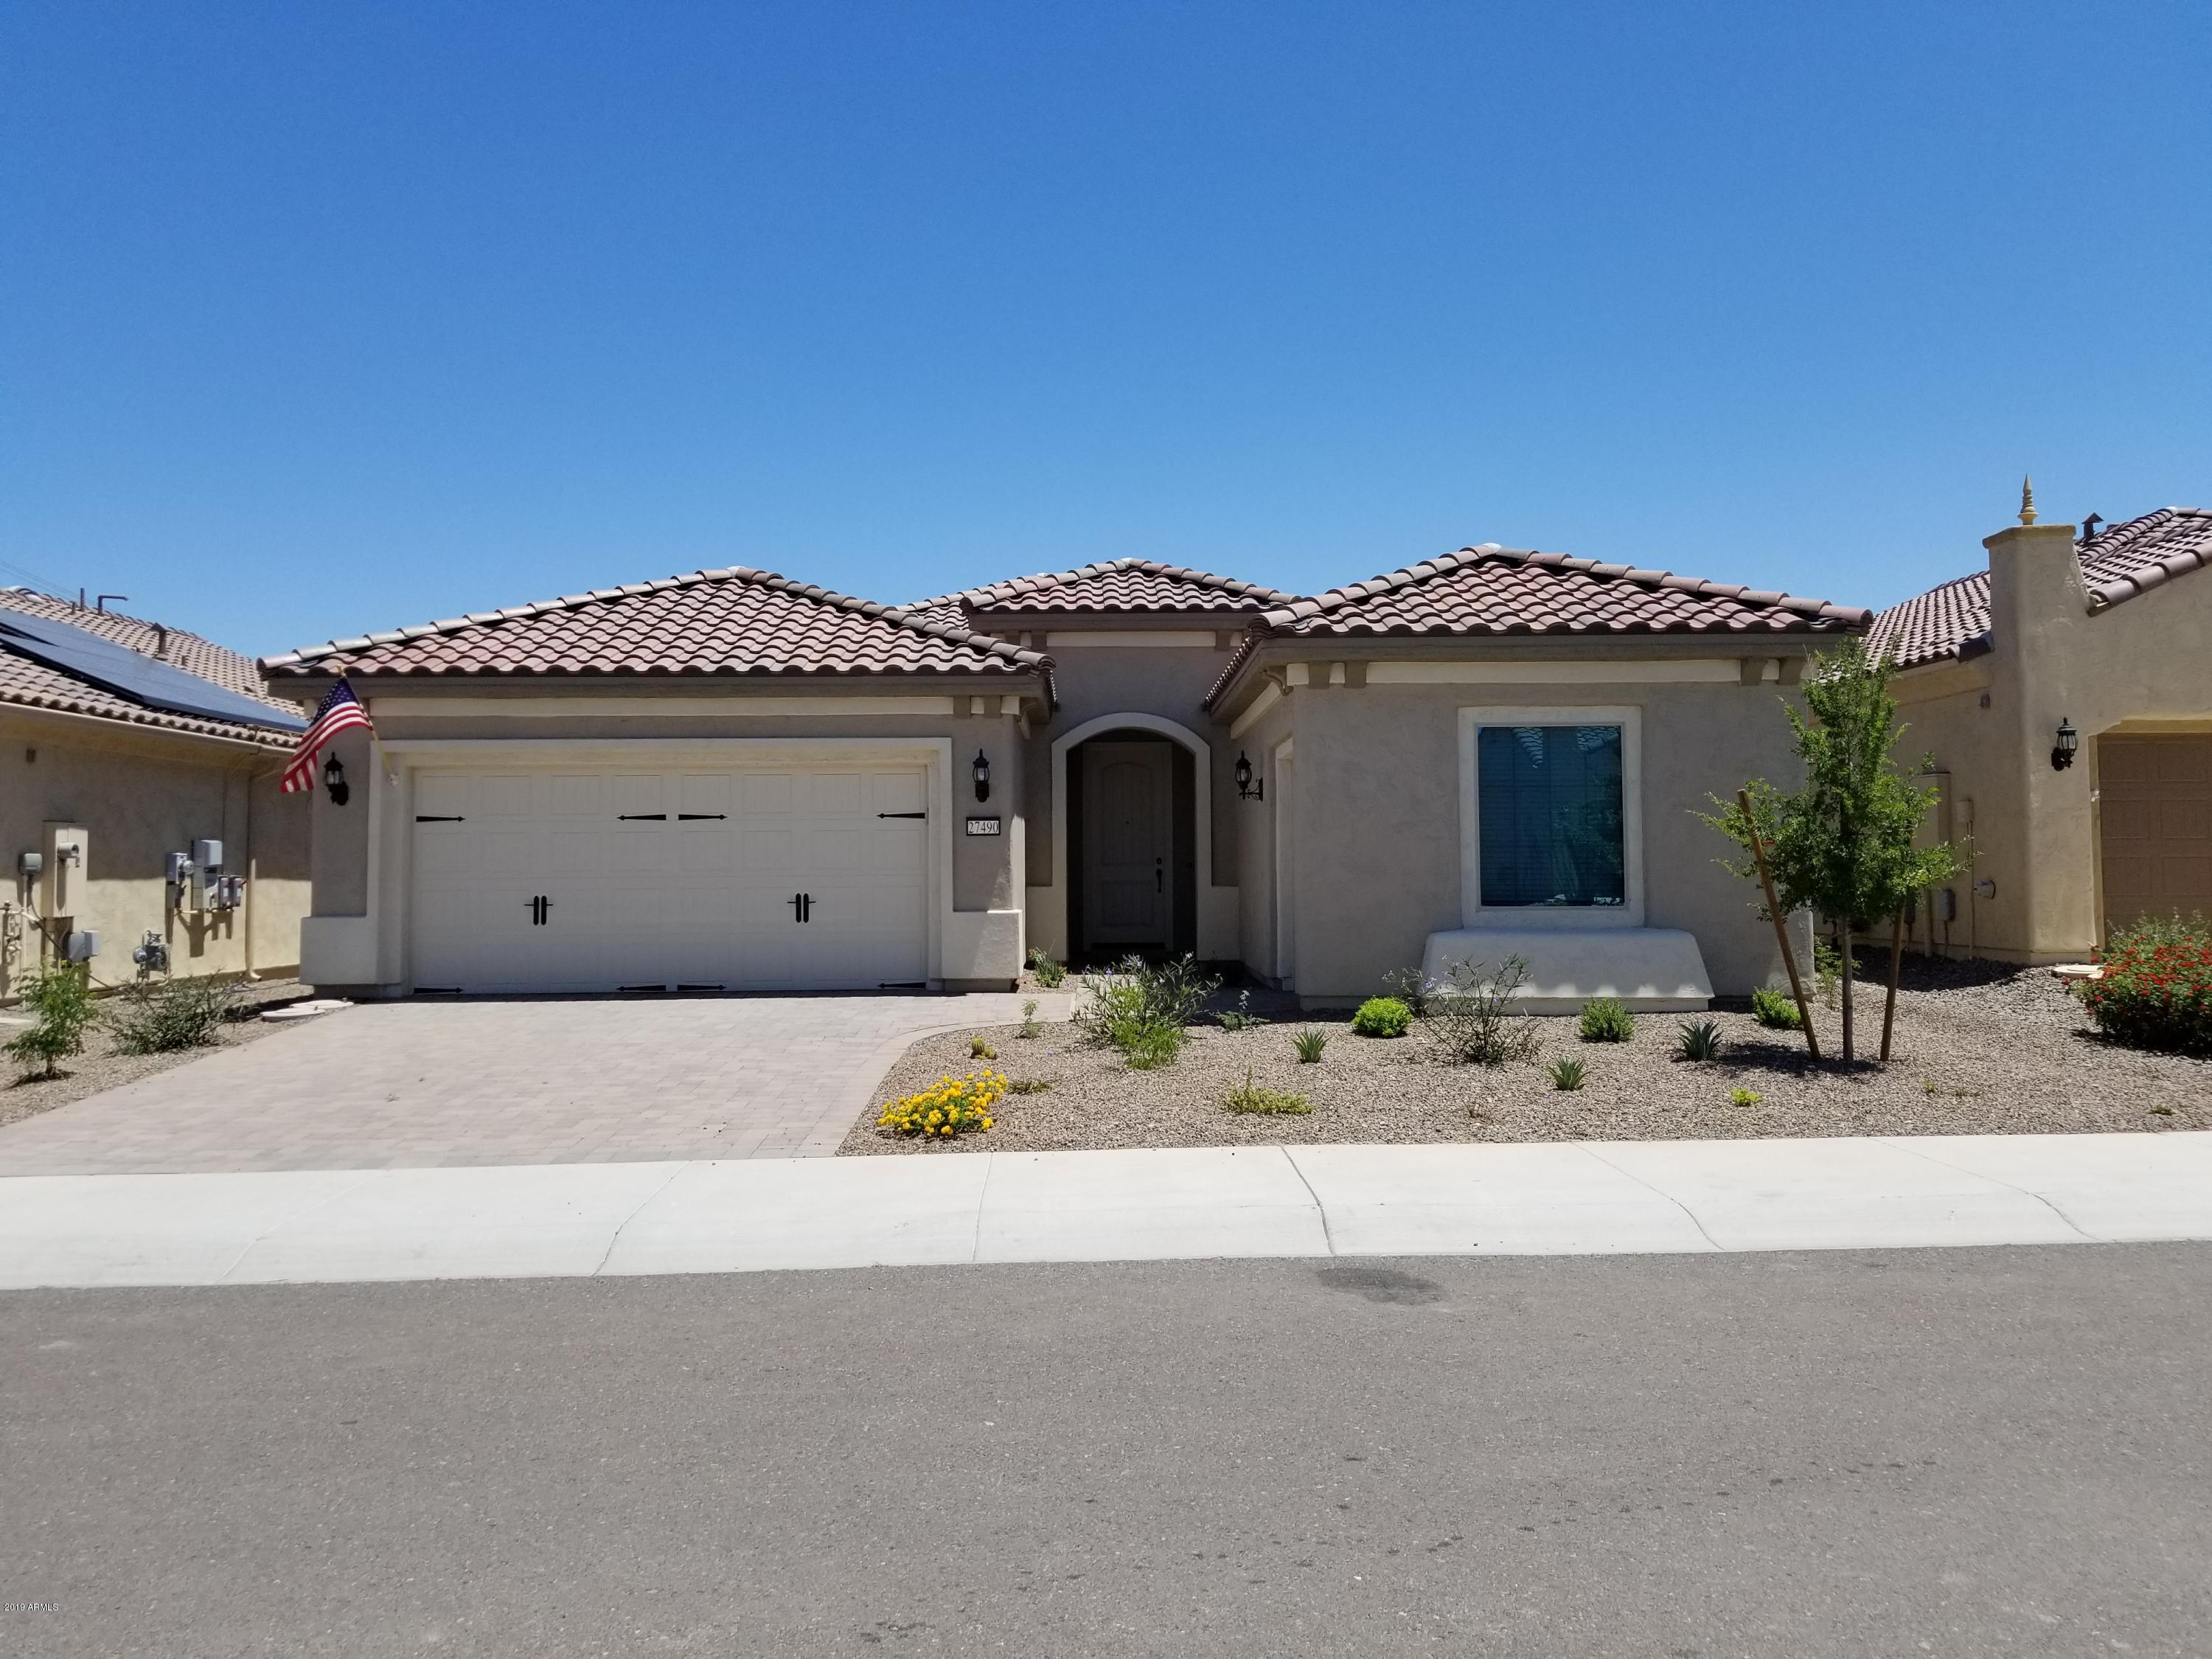 Photo of 27490 W MOHAWK Lane, Buckeye, AZ 85396